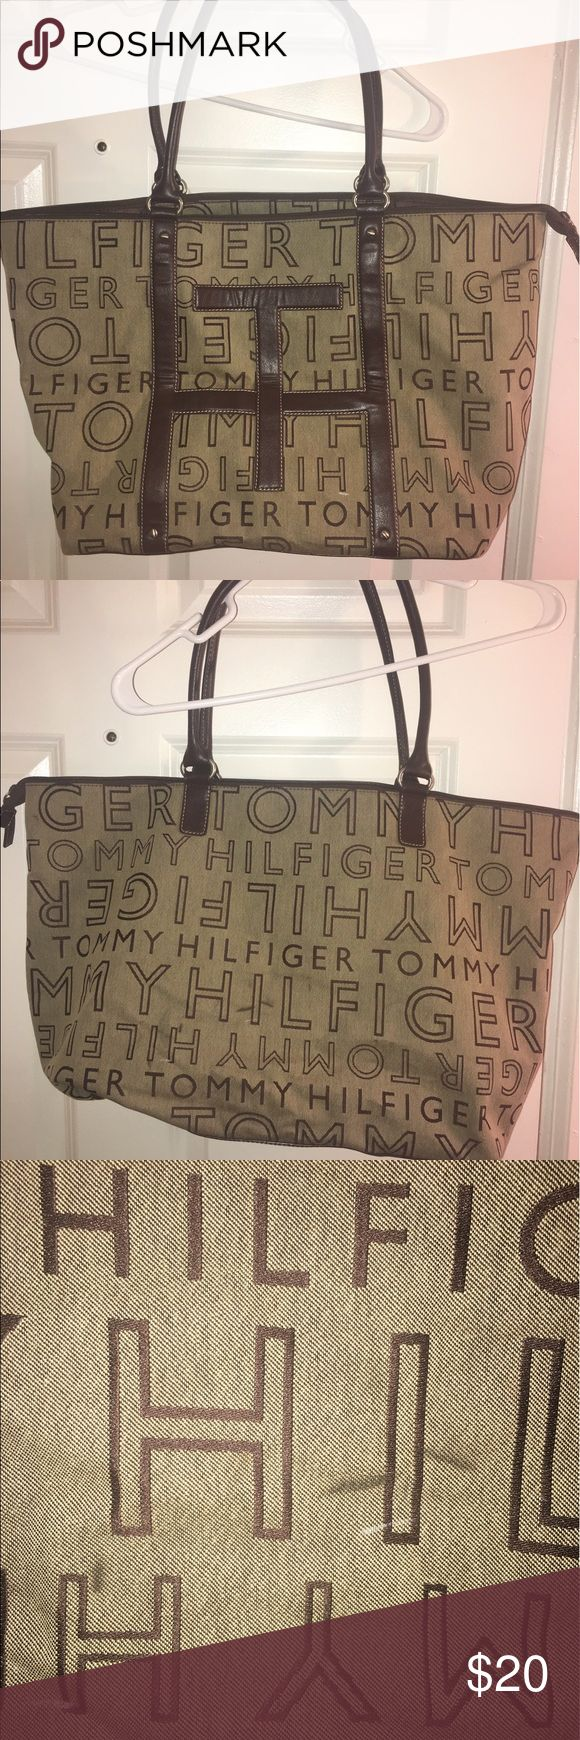 Tommy Hilfiger Tote bag! Great condition except one little mark, shown in pictures. I haven't even tried to get it off so it may come off very easily. It's a decent size bag and could be used as an everyday bag or something such as a beach bag. Tommy Hilfiger Bags Totes